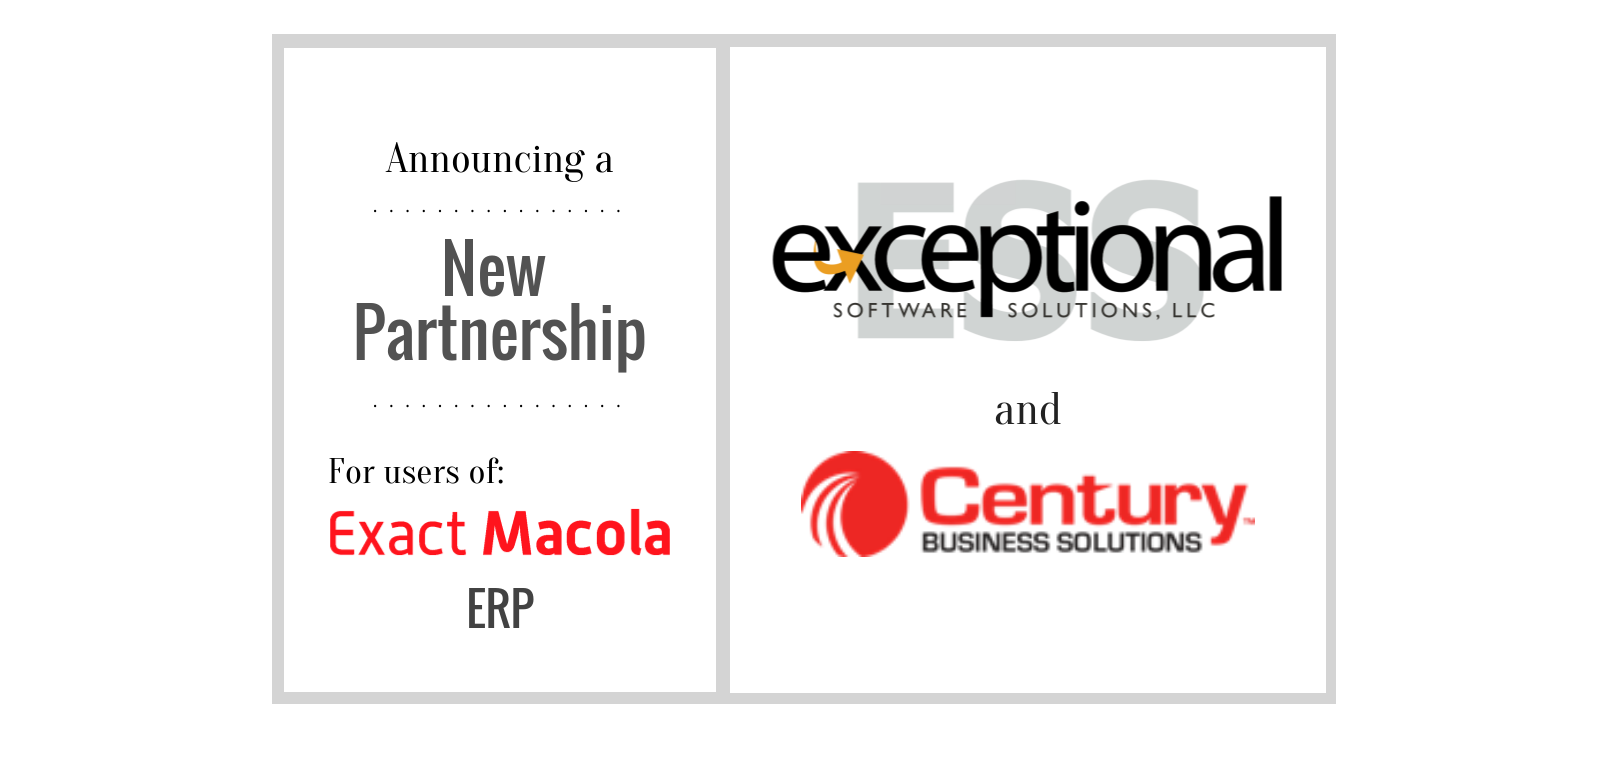 Exceptional software solutions llc announces a new partnership with for more information on credit card payment processing for exact macola contact exceptional software solutions at todesoftsol reheart Images